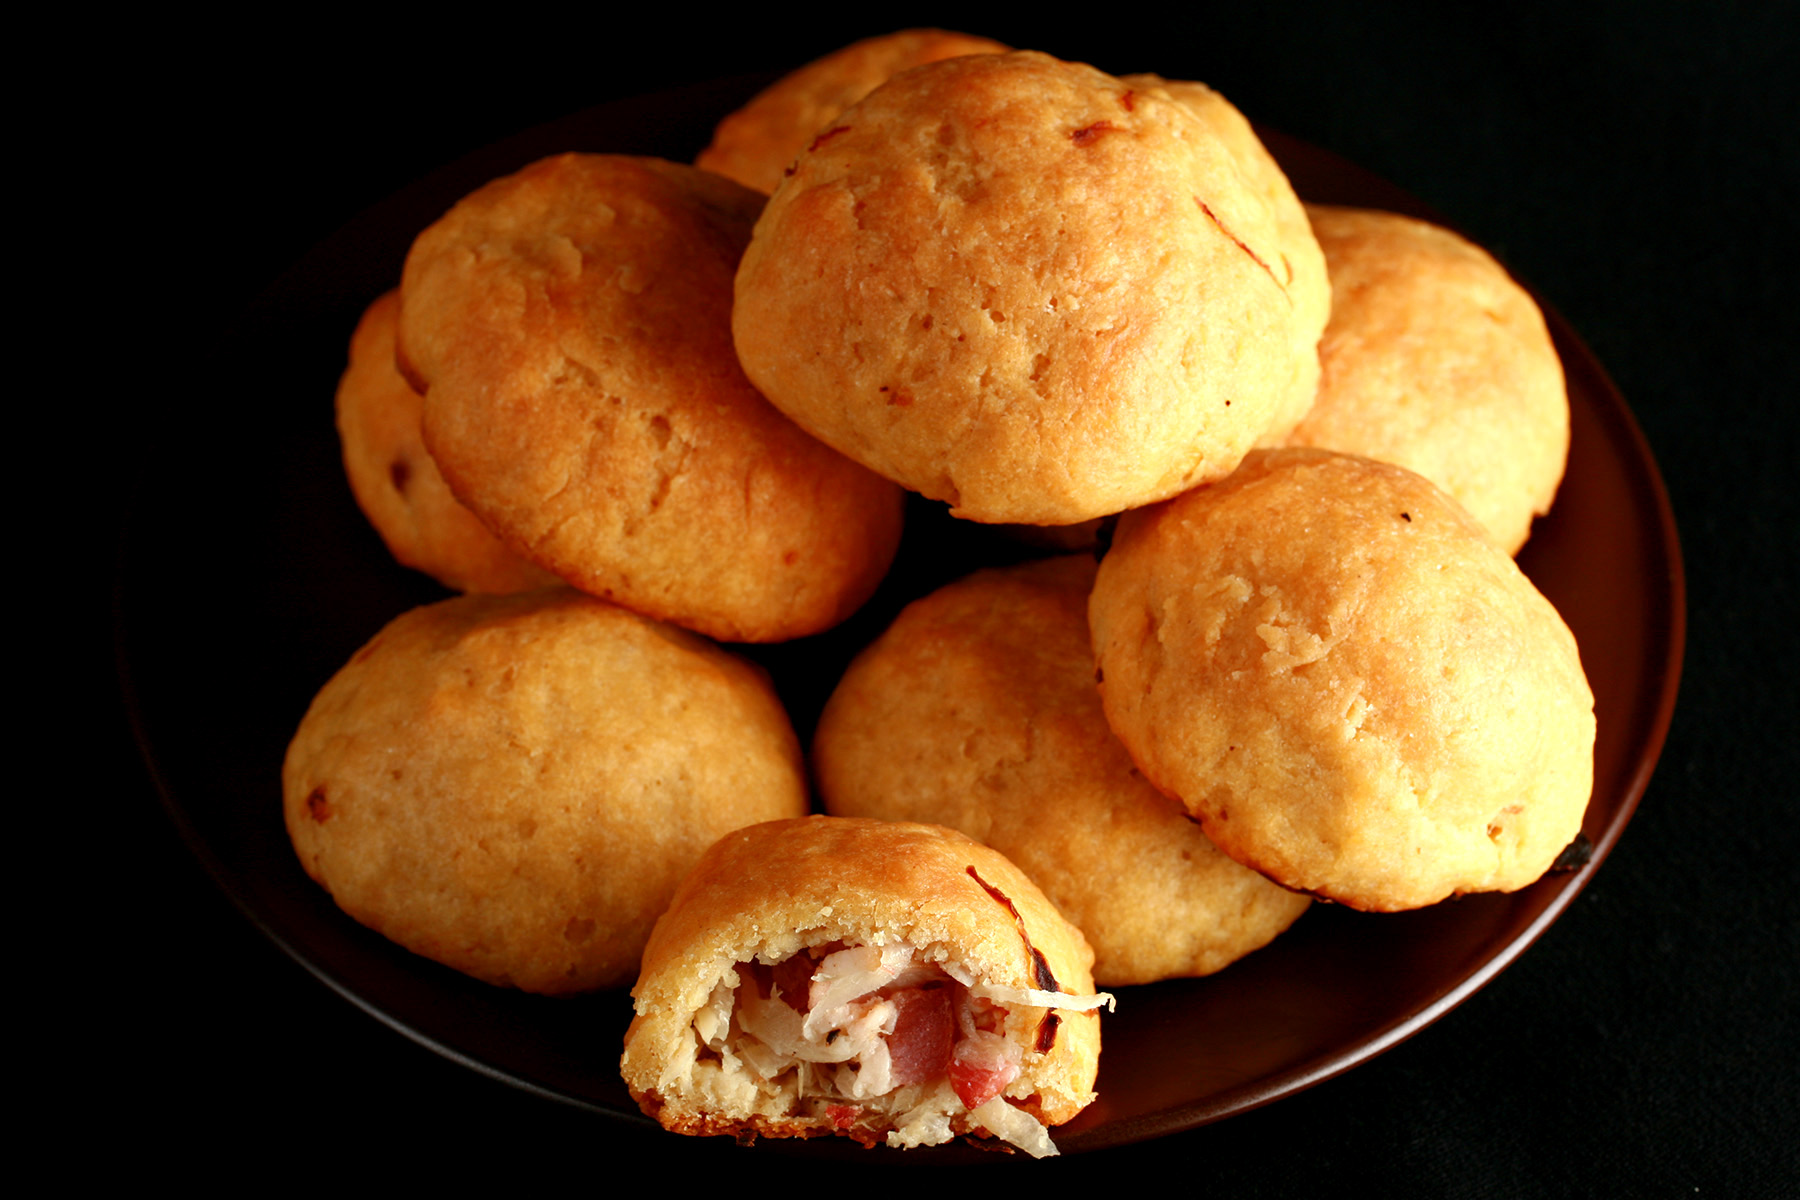 A pile of gluten-free sauerkraut balls on a small plate. One is broken in half, showing the bacon and onion mixture inside.